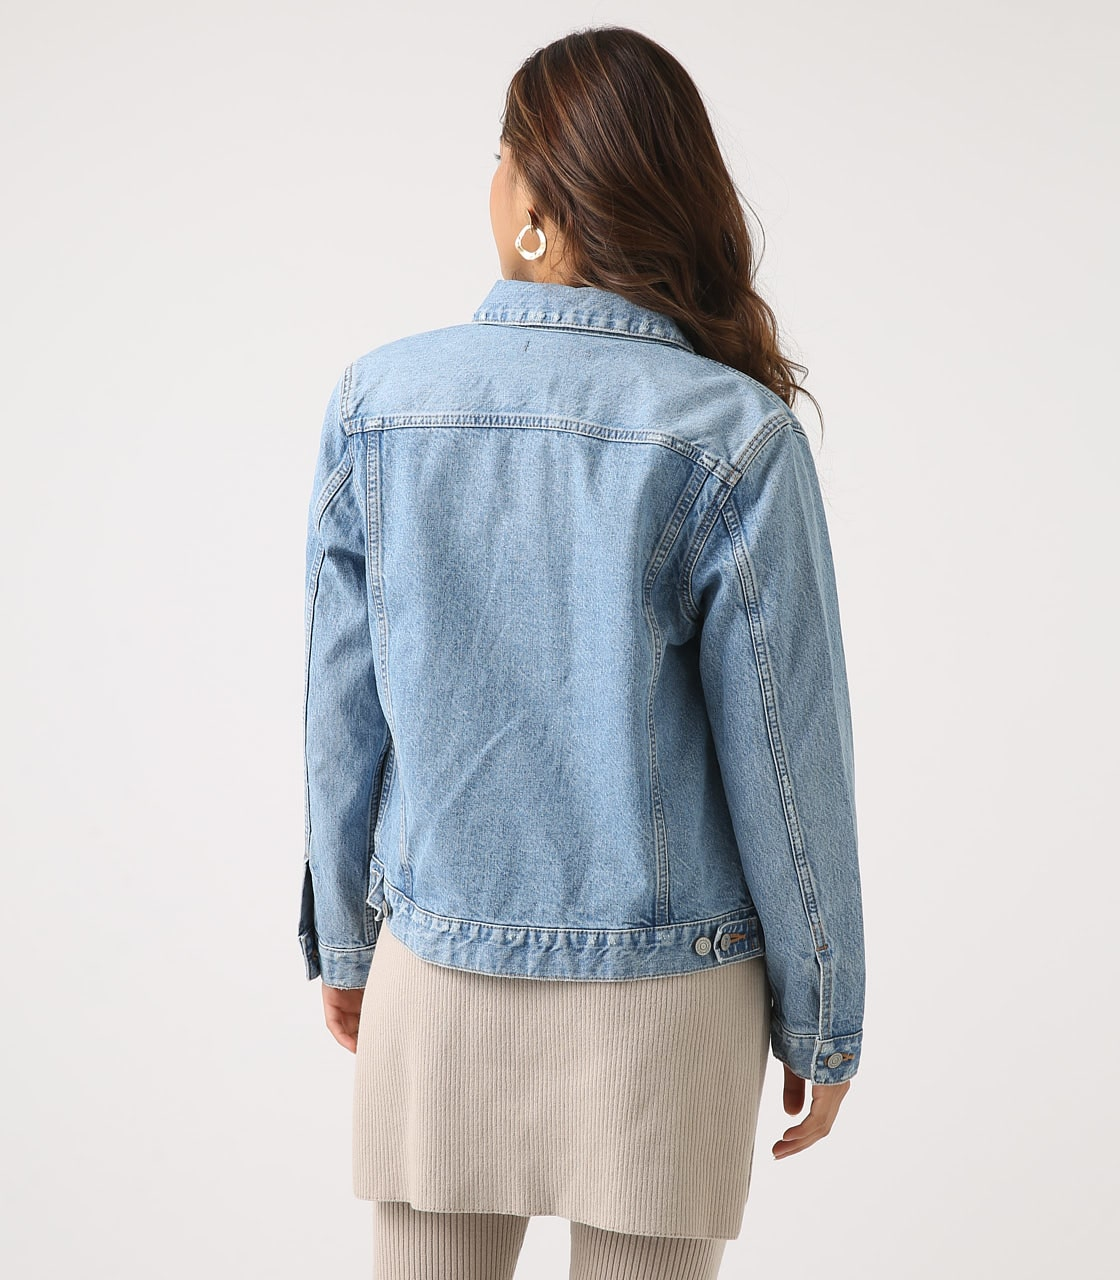 【AZUL BY MOUSSY】DENIM JACKET 詳細画像 L/BLU 7